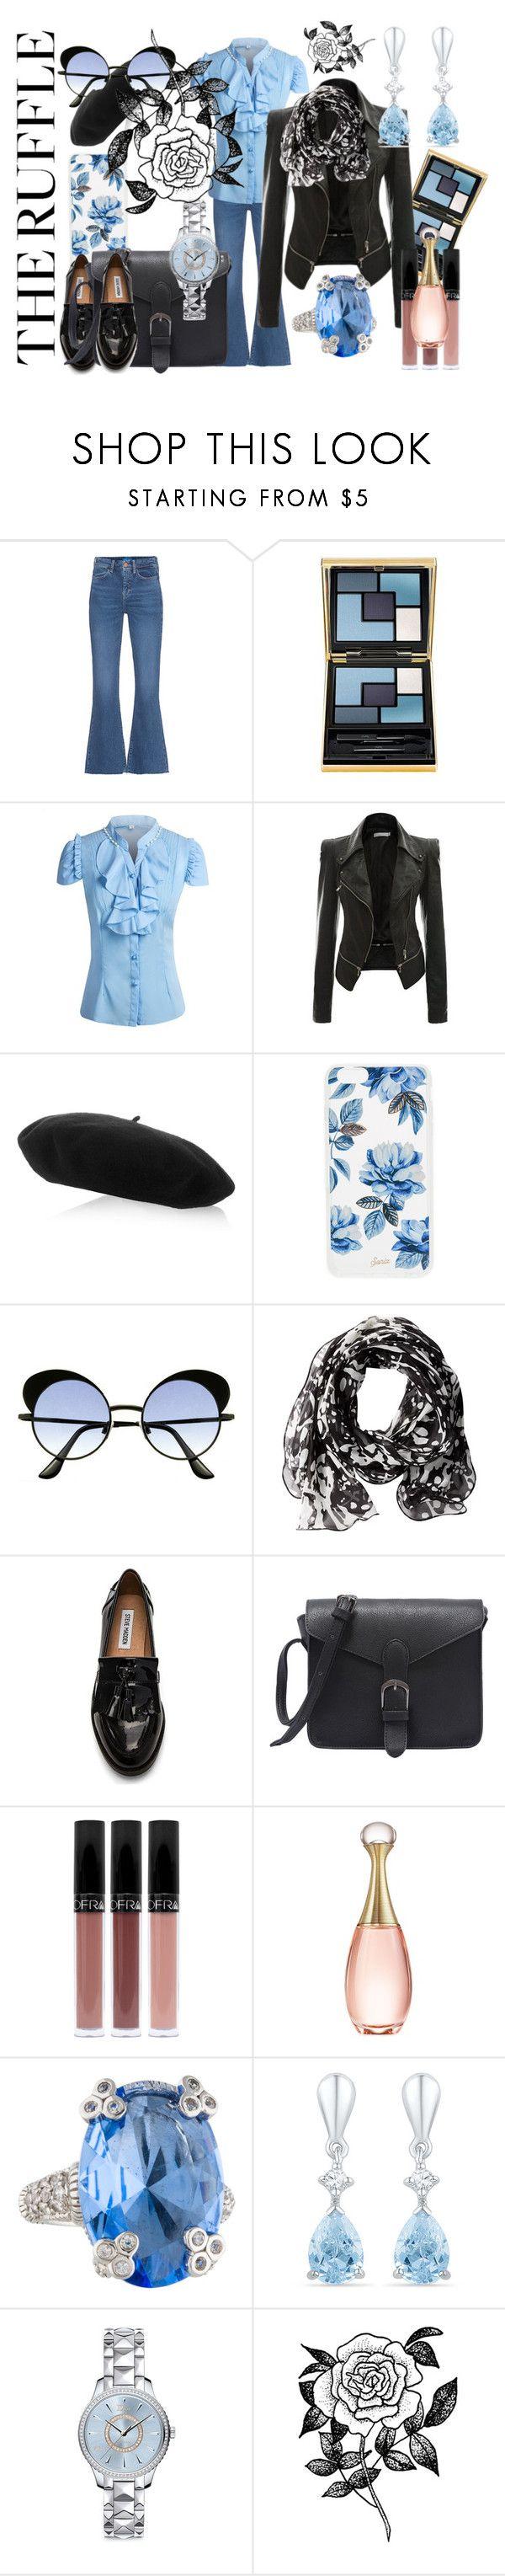 """""""volánky všude"""" by patkova-v ❤ liked on Polyvore featuring Barneys New York, M.i.h Jeans, Yves Saint Laurent, Gucci, Sonix, Calvin Klein, Steve Madden, Christian Dior, Judith Ripka and Forever 21"""